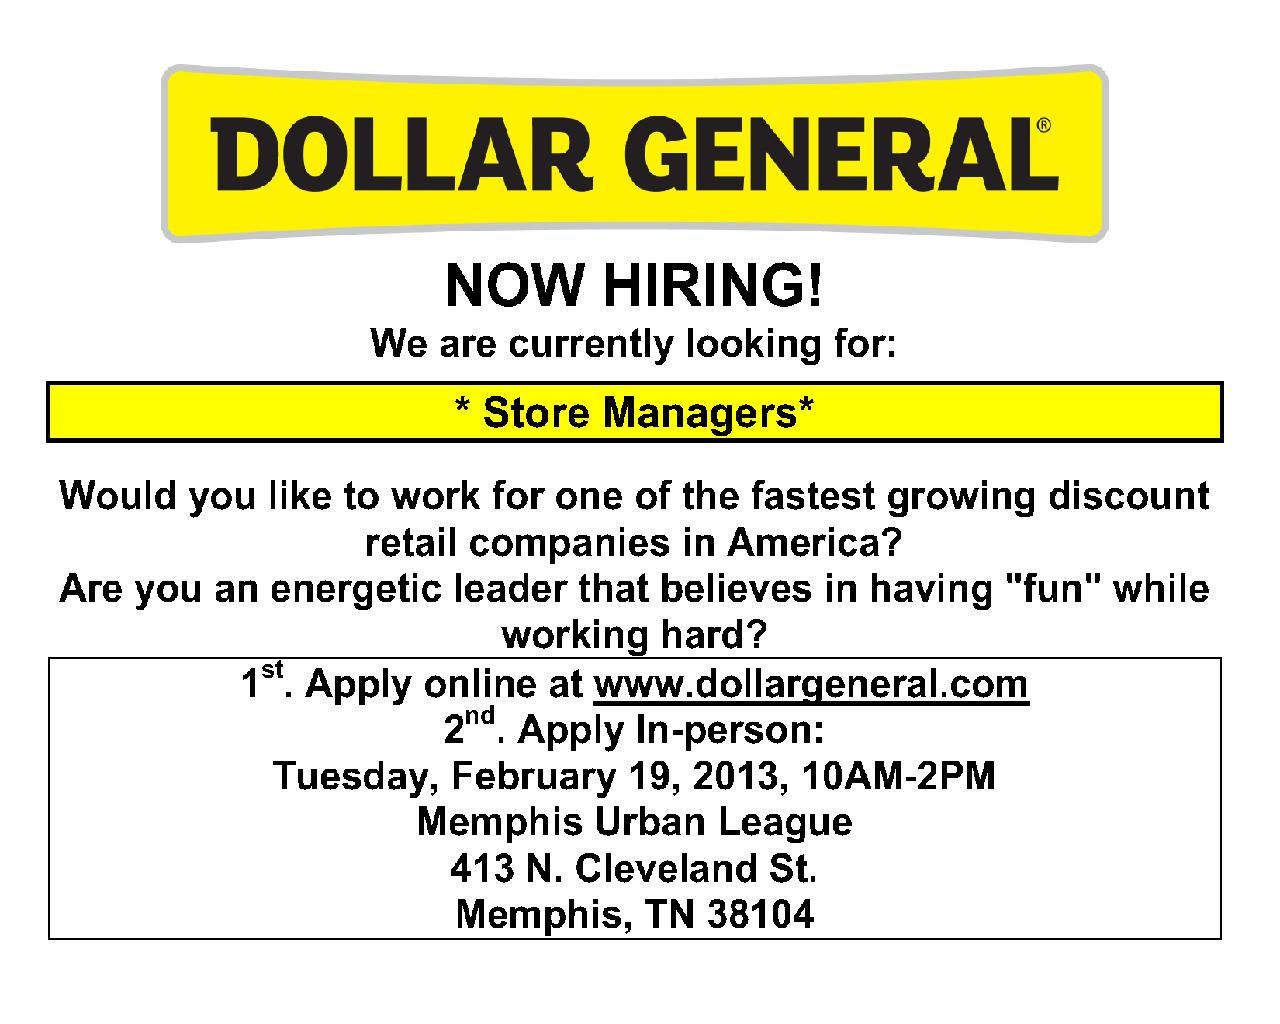 Dollar General Job Fair @ Memphis Urban League 2/19/13 | Job ...